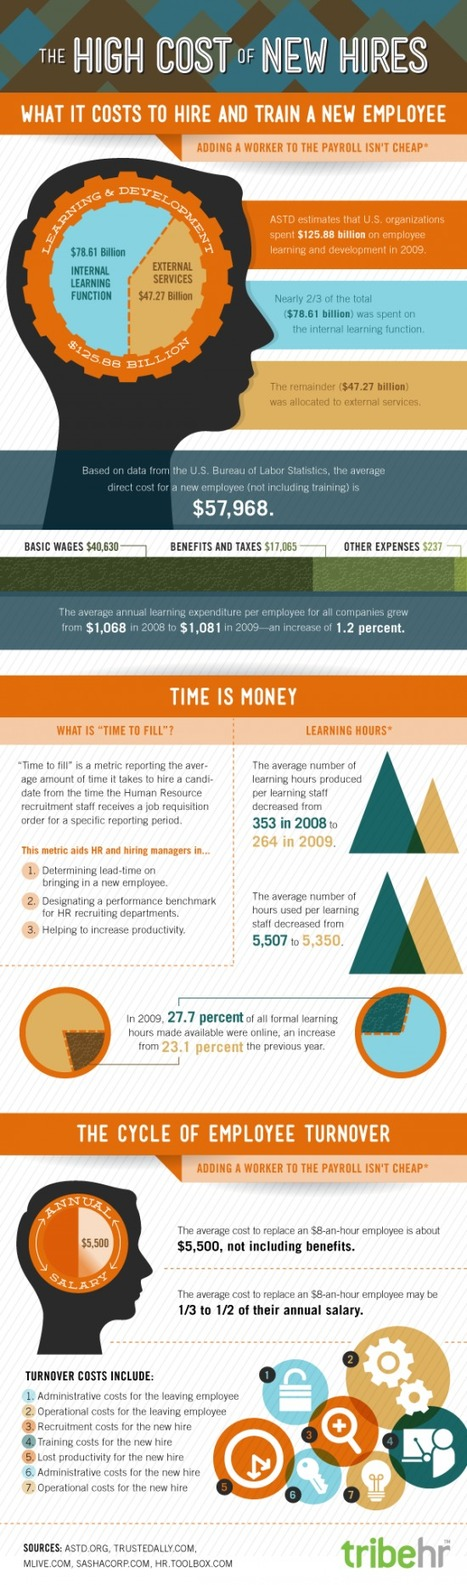 Employee Turnover Infographic: The High Cost of New Hires | Talented HR | Scoop.it